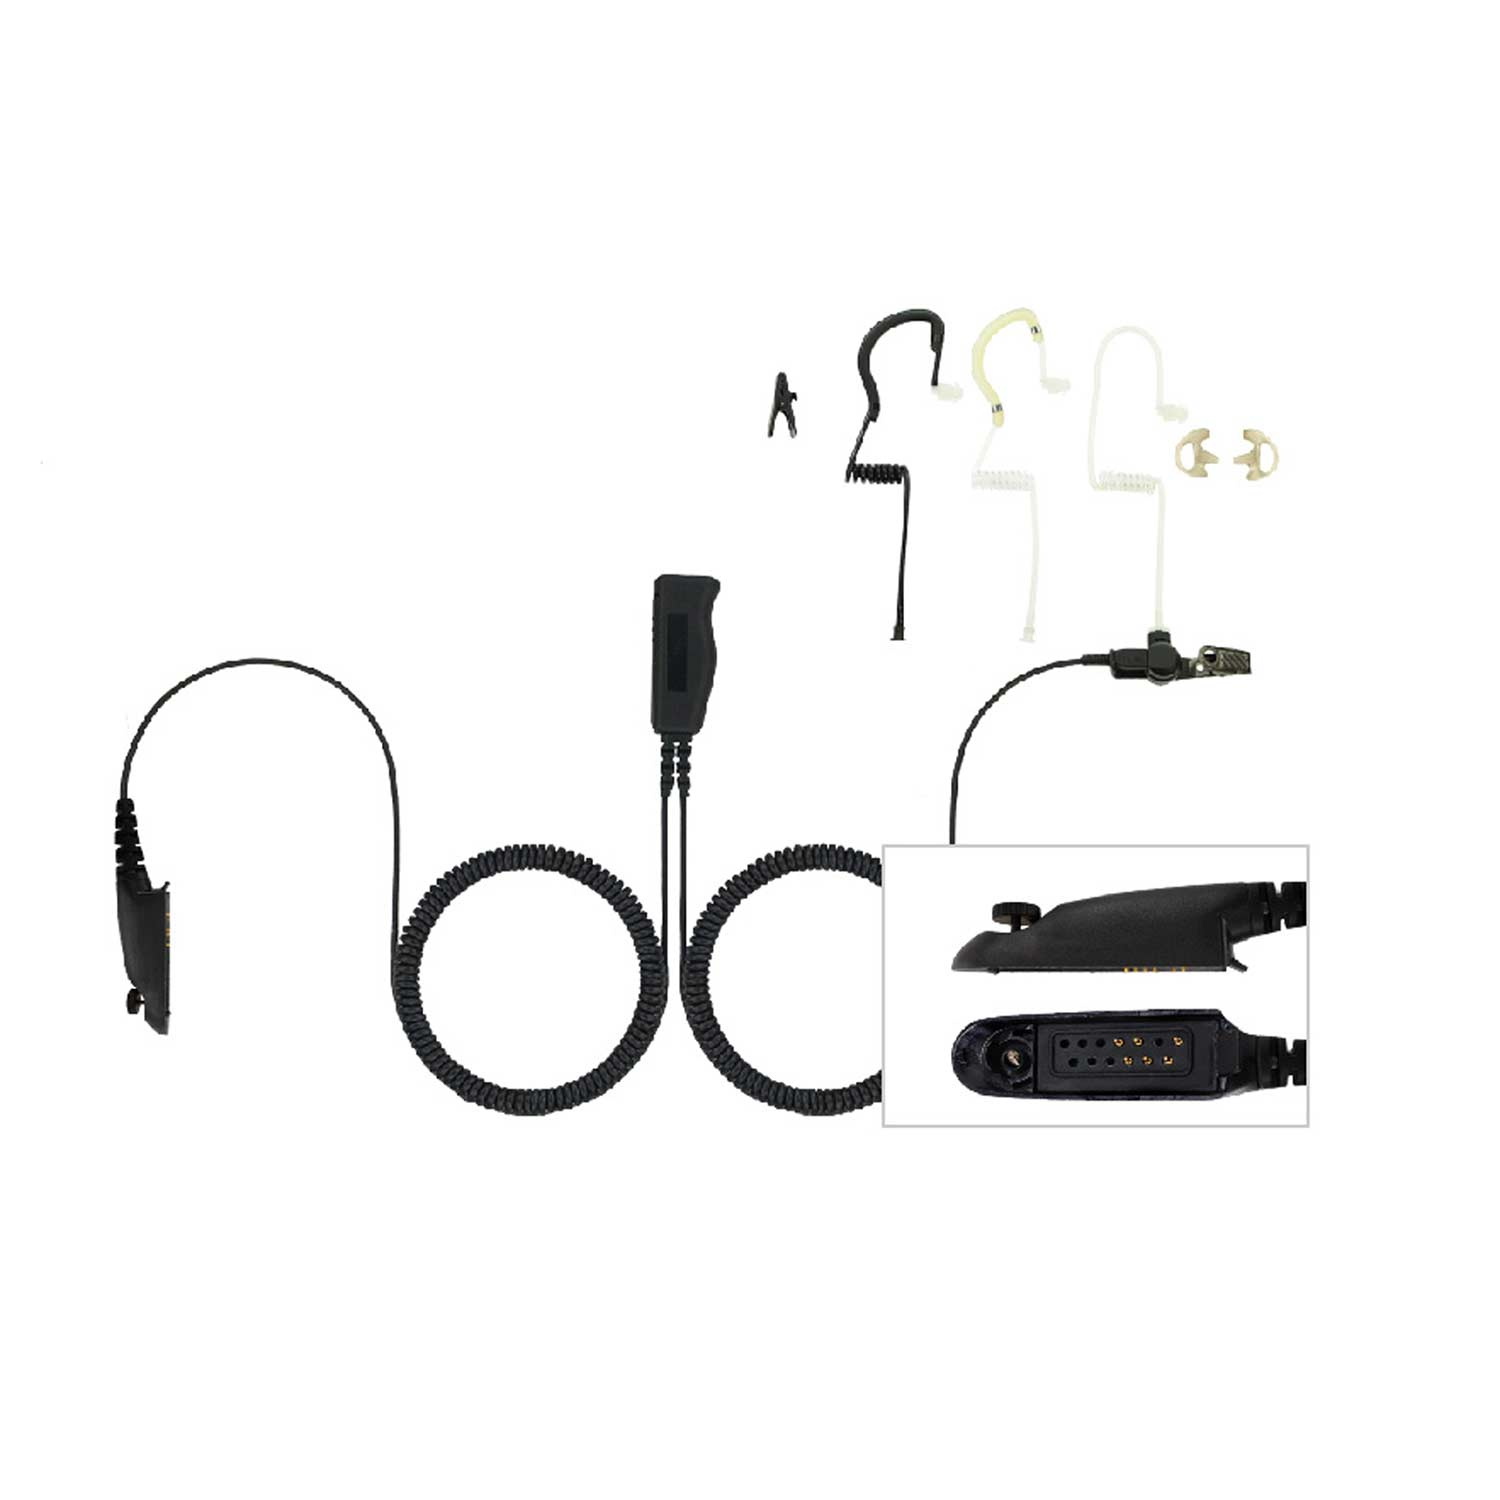 Ear Hugger 2 Wire Kit for Motorola HT750/1250/GP/MTX